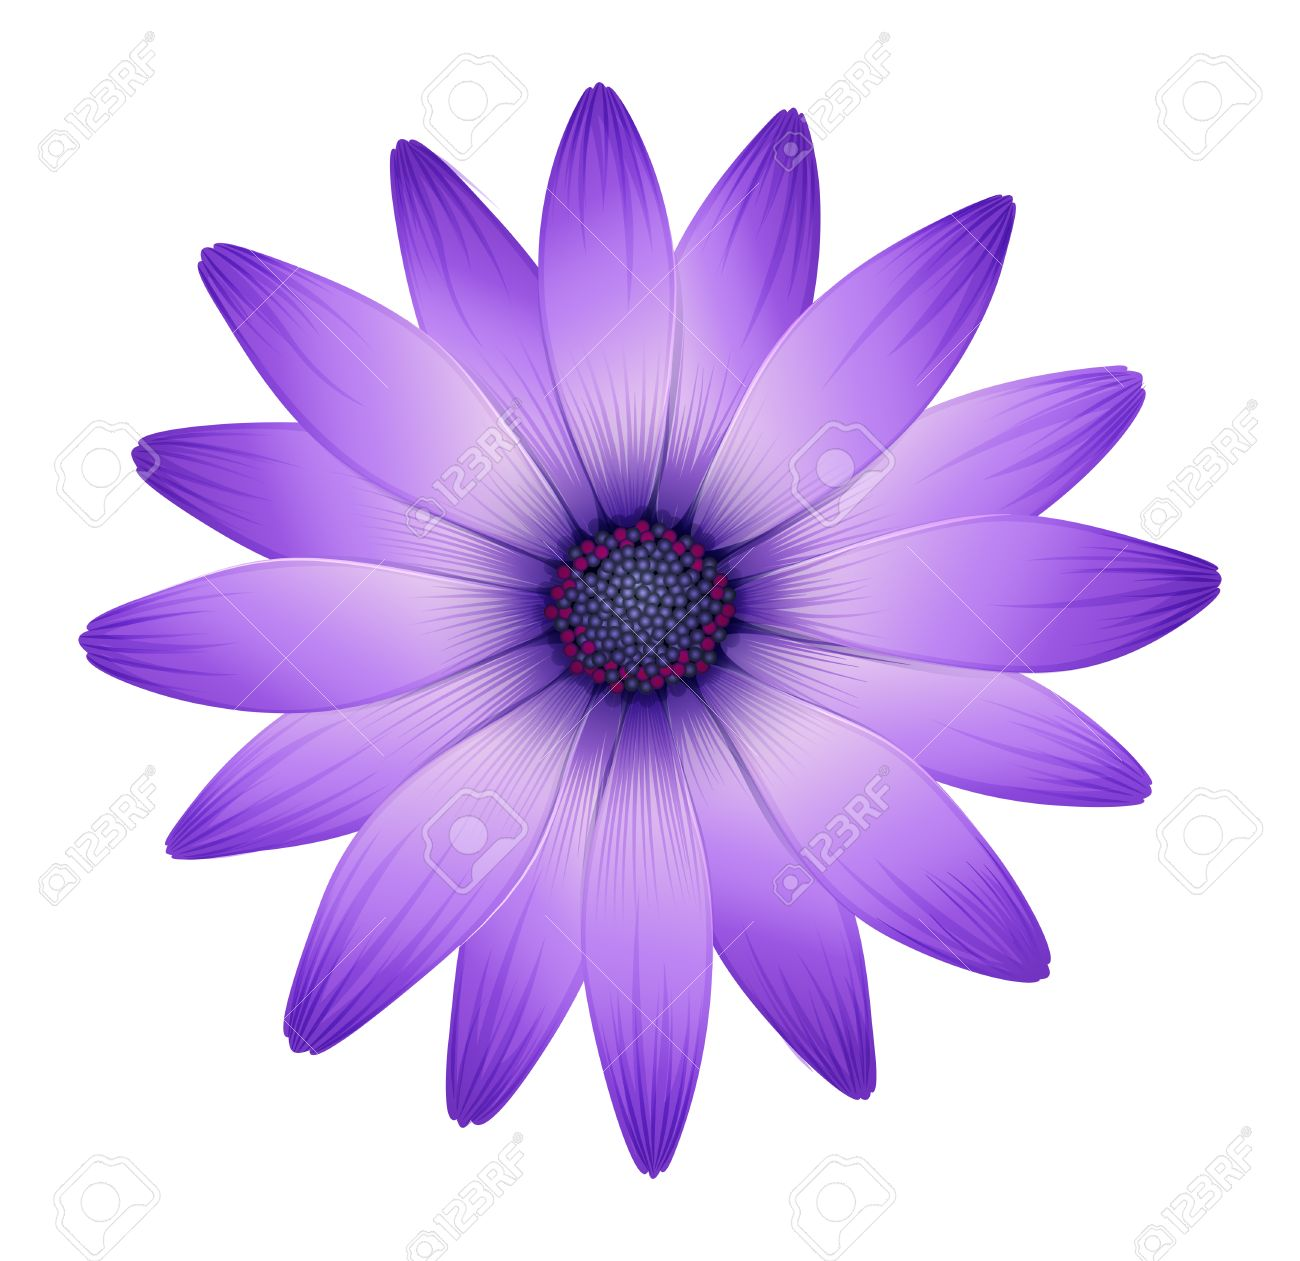 Purple flowers white background amazing wallpapers illustration of a fresh purple flower on a white background mightylinksfo